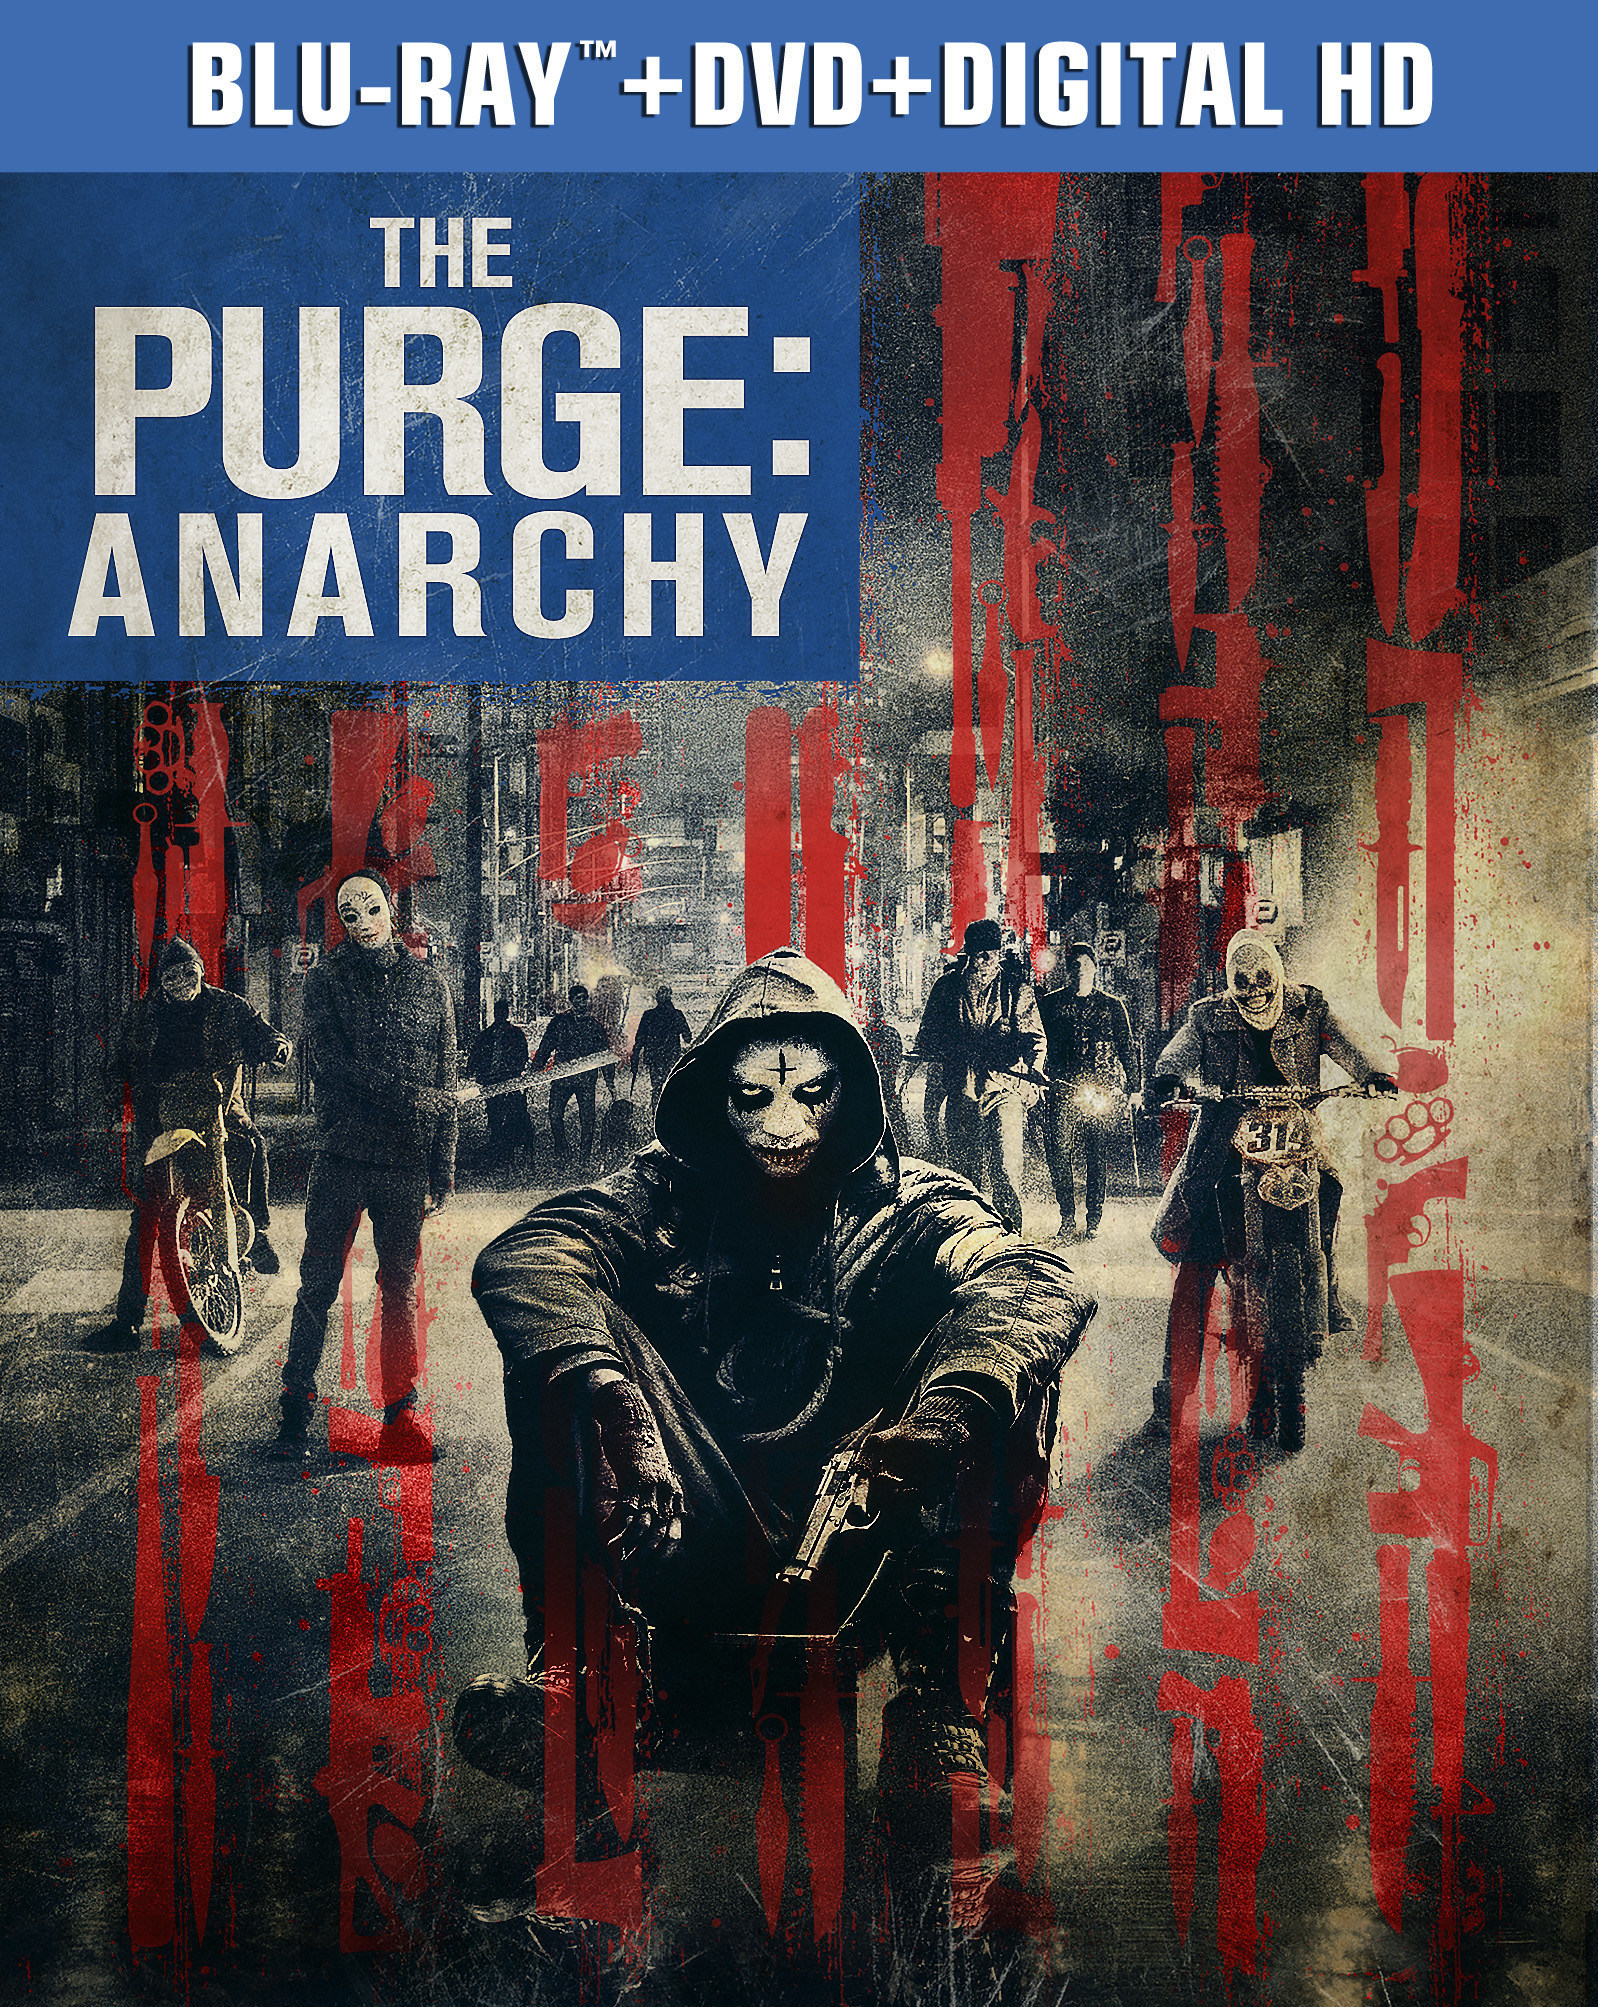 THE PURGE: ANARCHY Coming to Blu-ray Combo Pack & Digital HD, 10/21